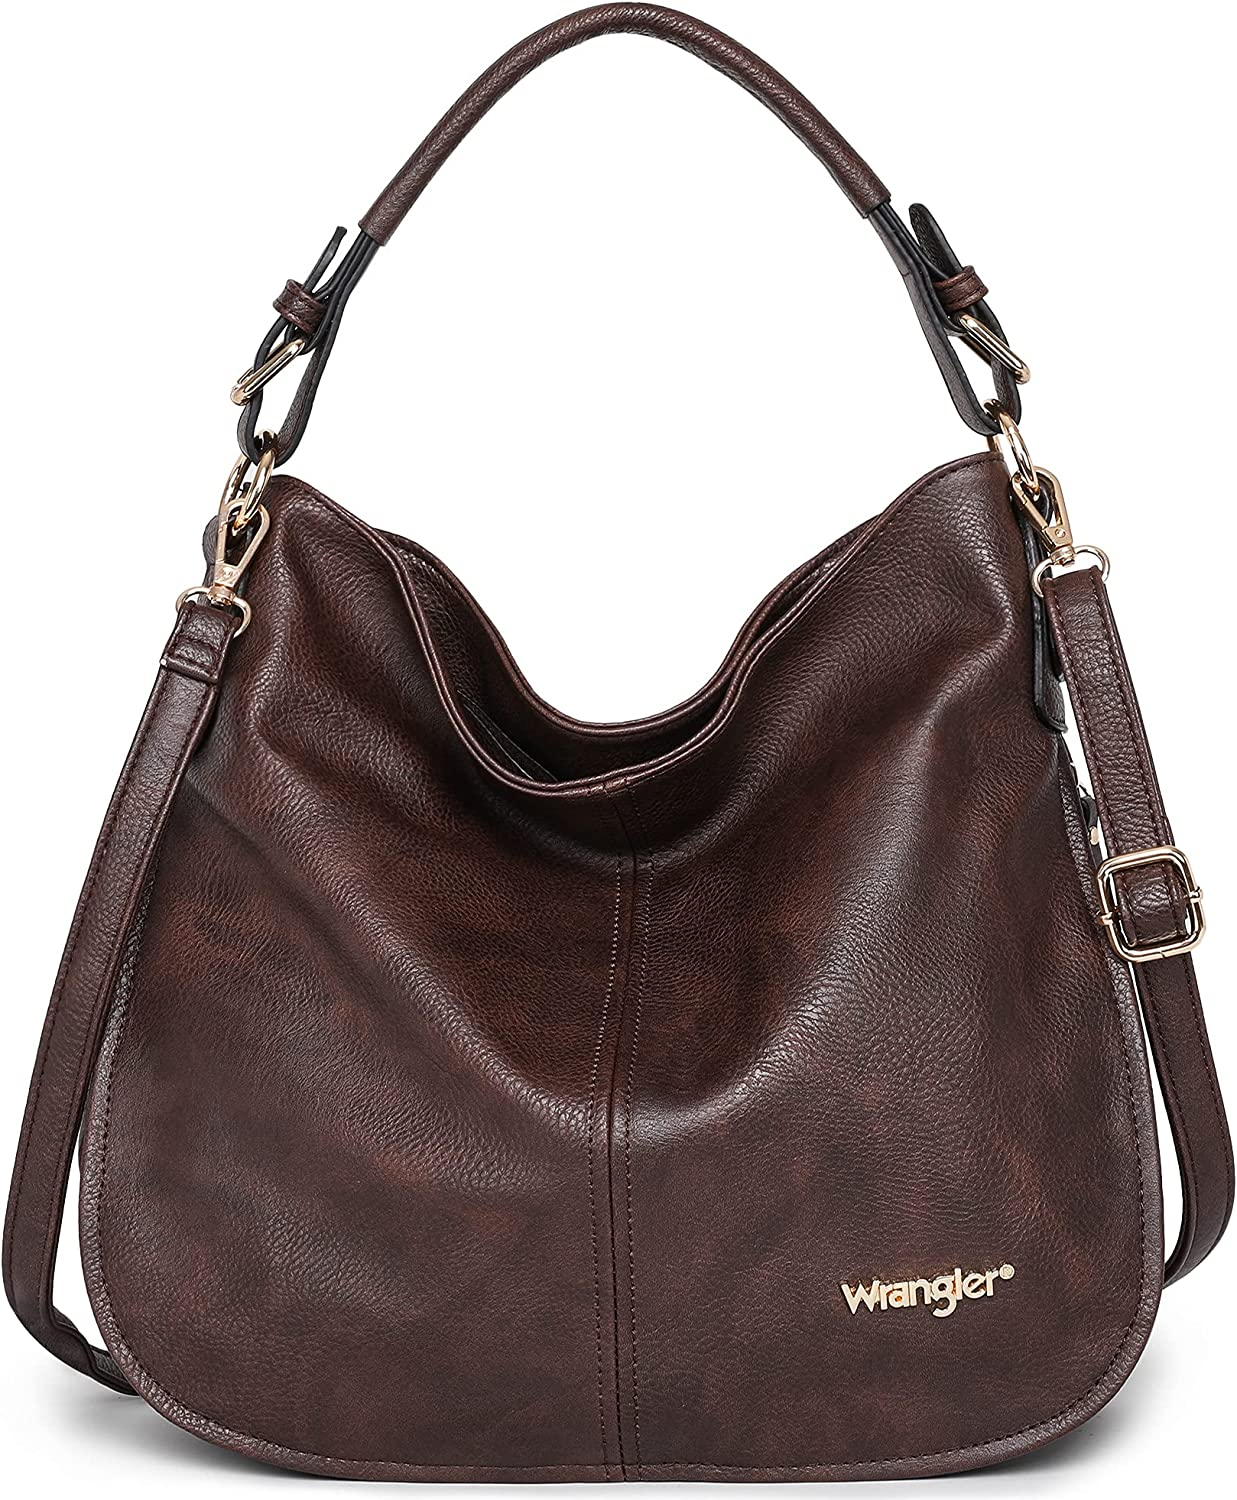 Wrangler by Montana Complete Free Shipping West Leather Tote Hobo Ranking TOP8 Wome Shoulder Bag for